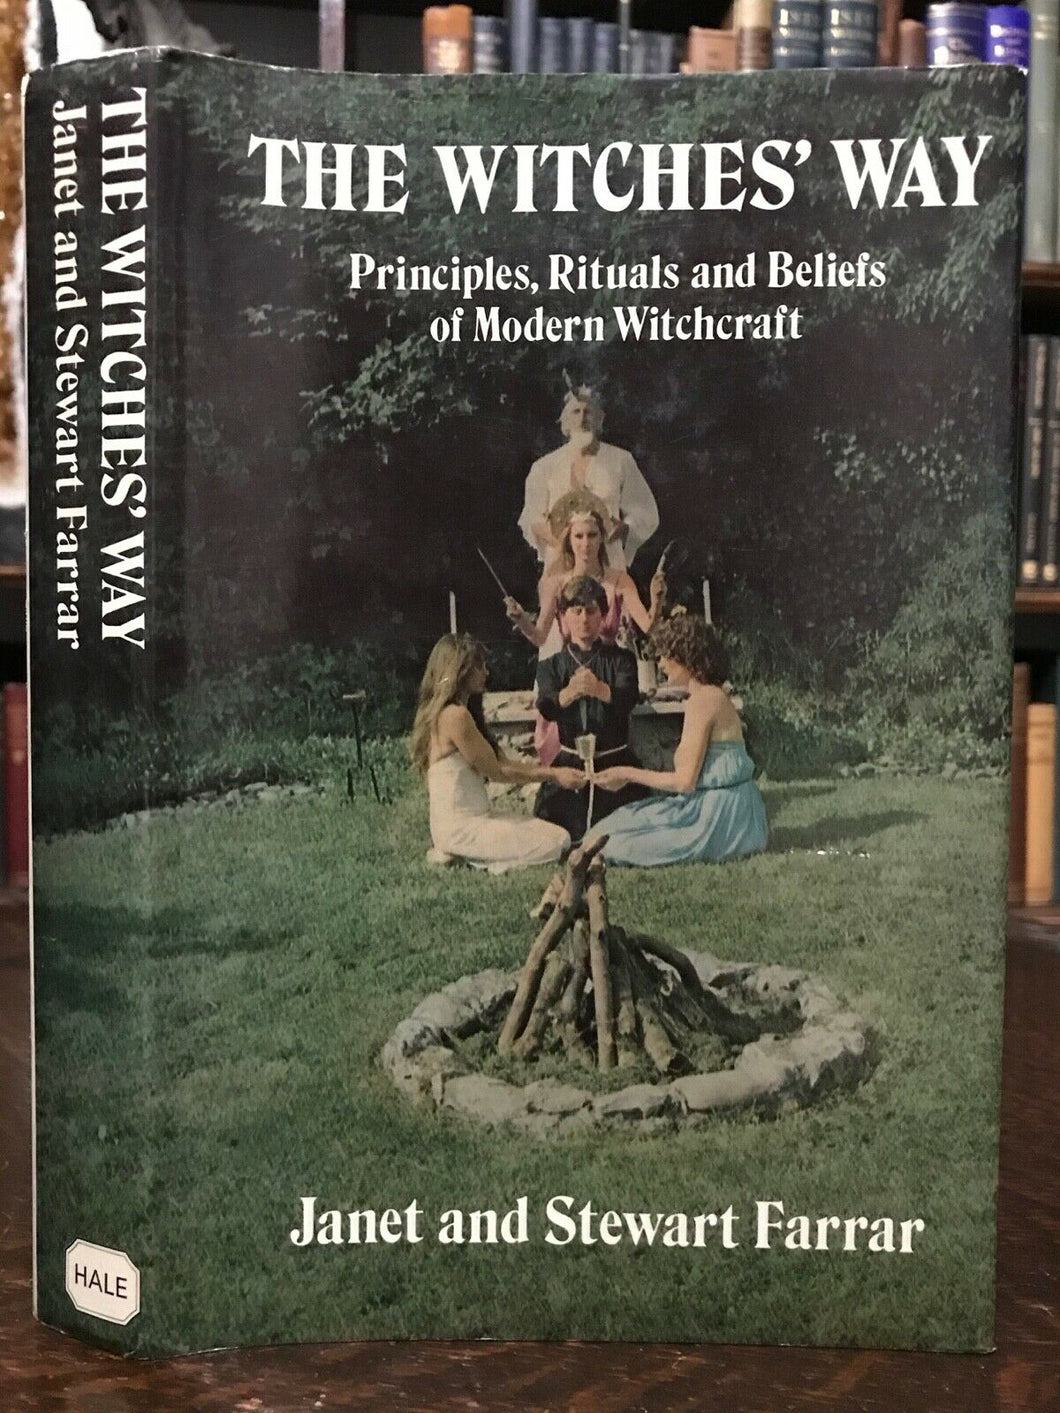 THE WITCHES' WAY - Farrar, 1986 WITCHCRAFT OCCULT BELIEFS WICCA SPELLS GRIMOIRE